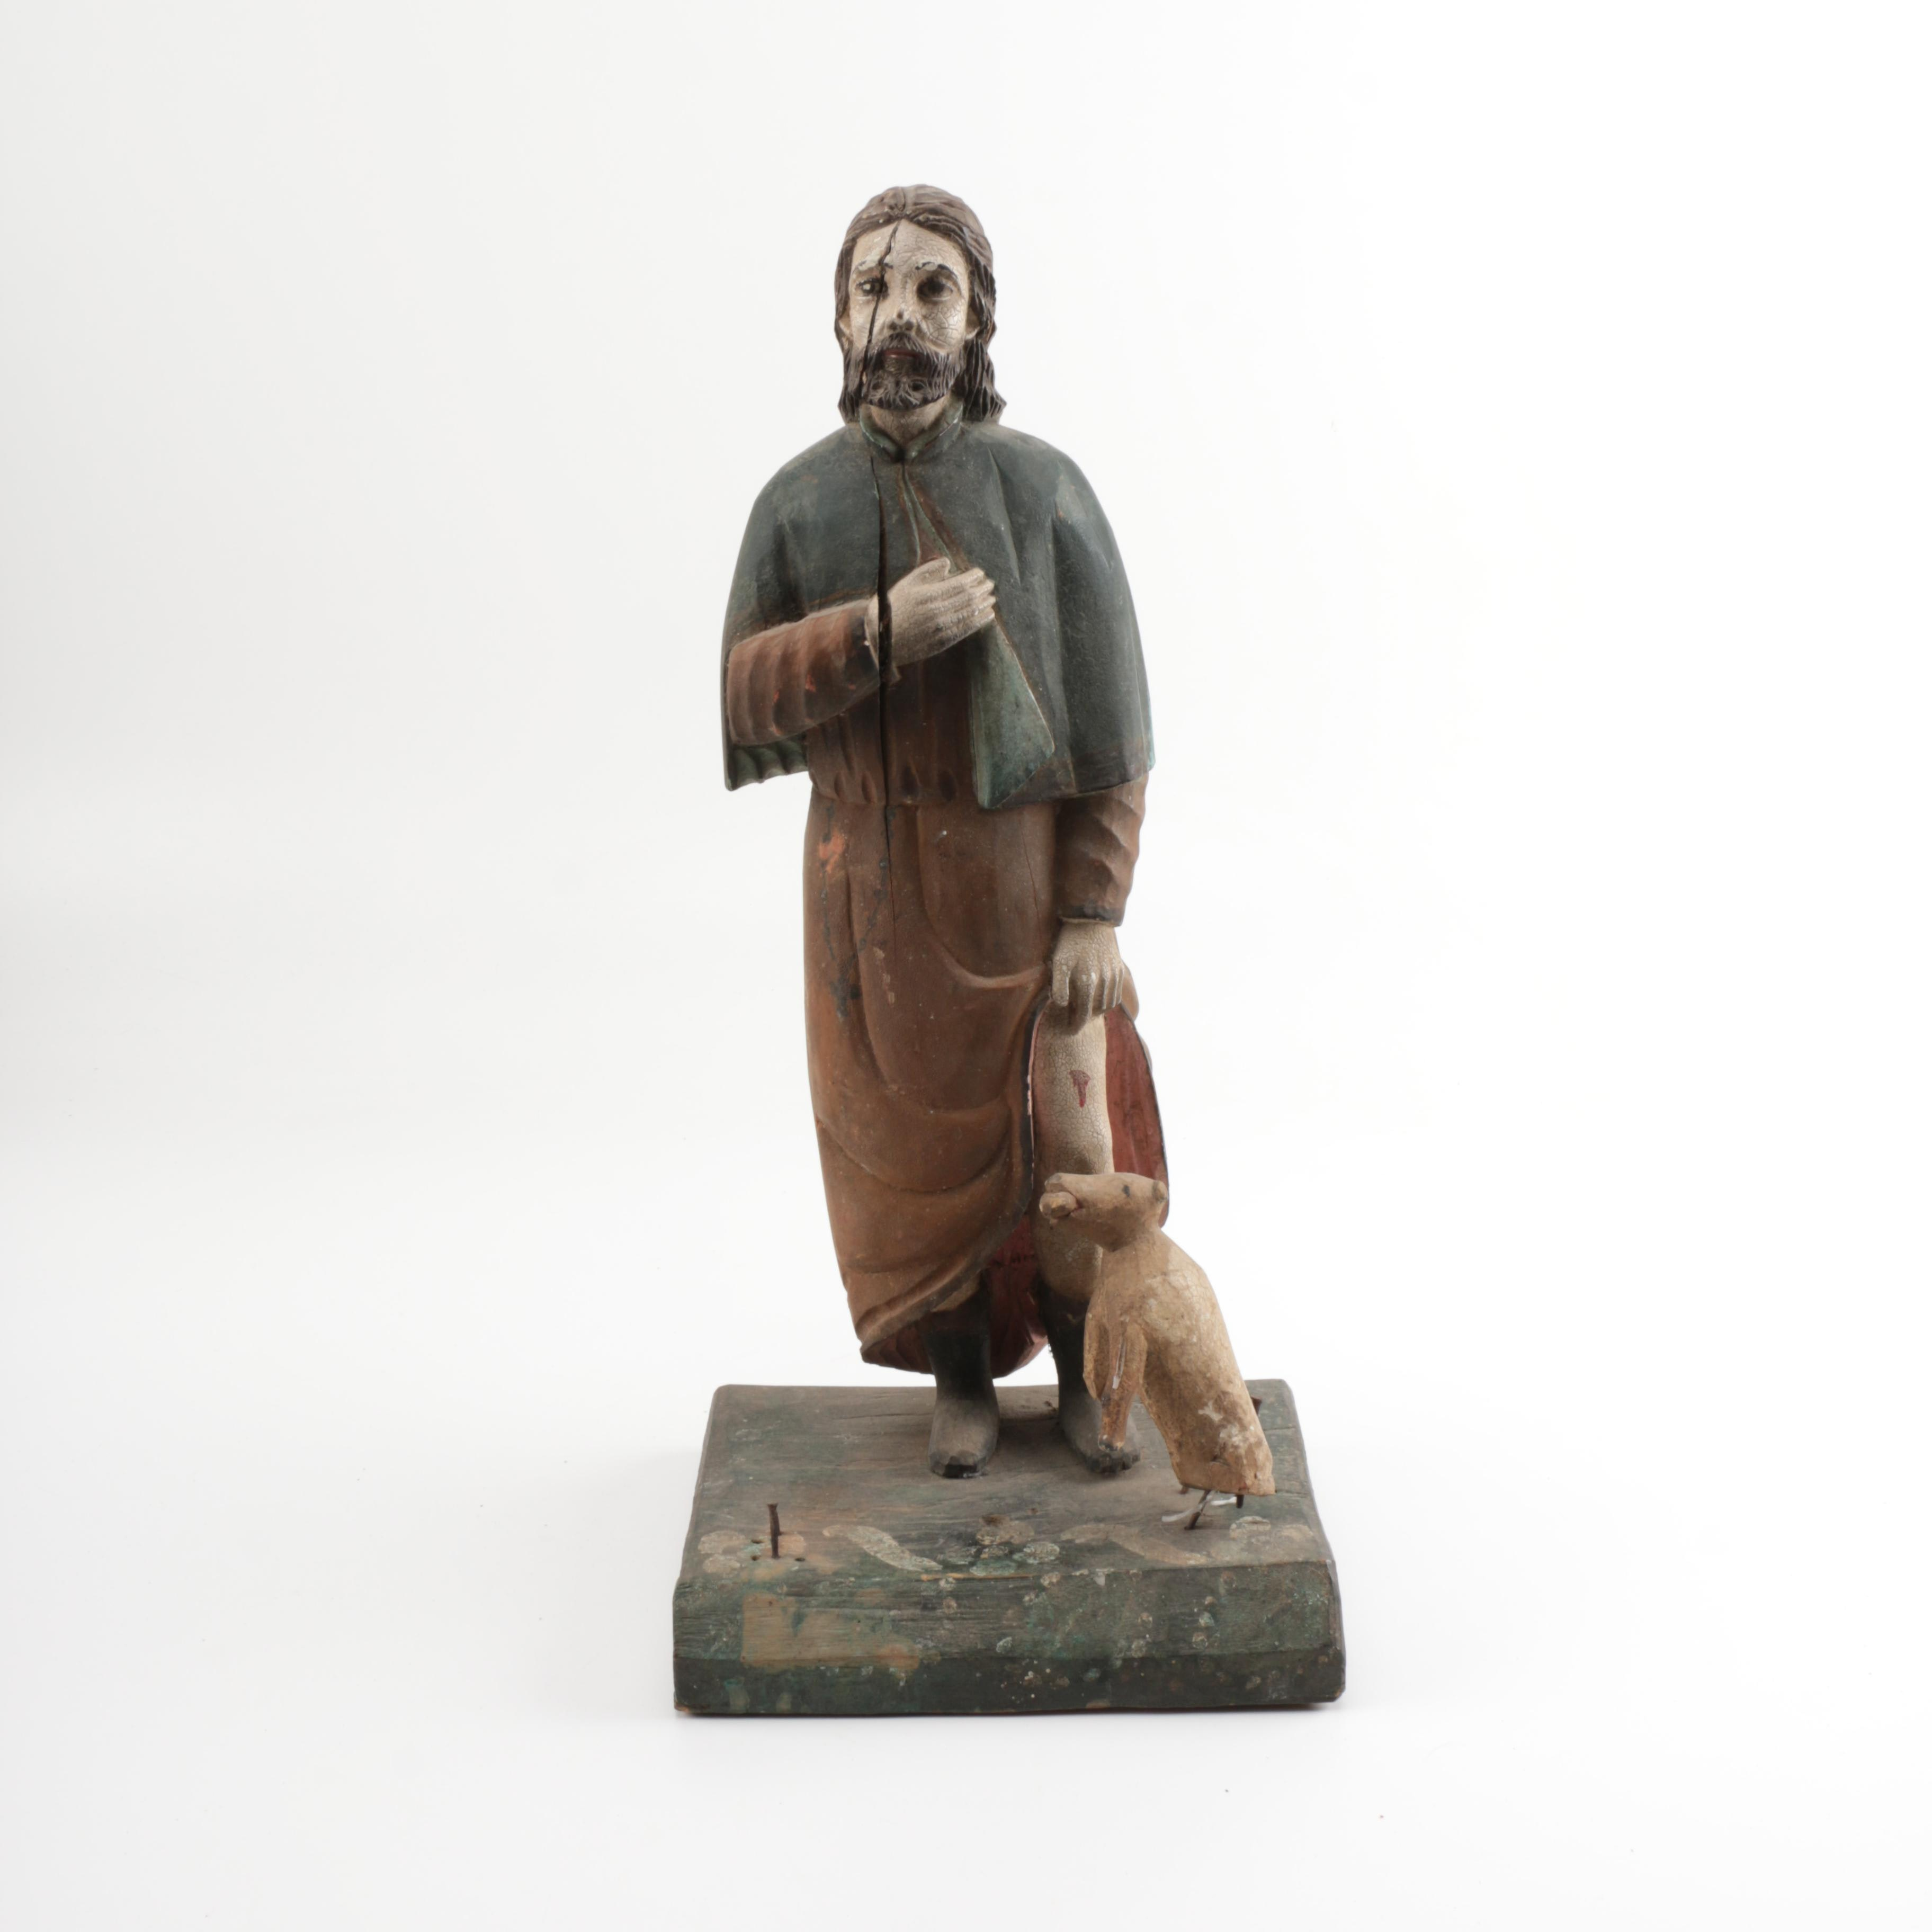 Mid 19th Century Spanish Colonial Santos Figure of St. Roch, Patron Saint of Dogs